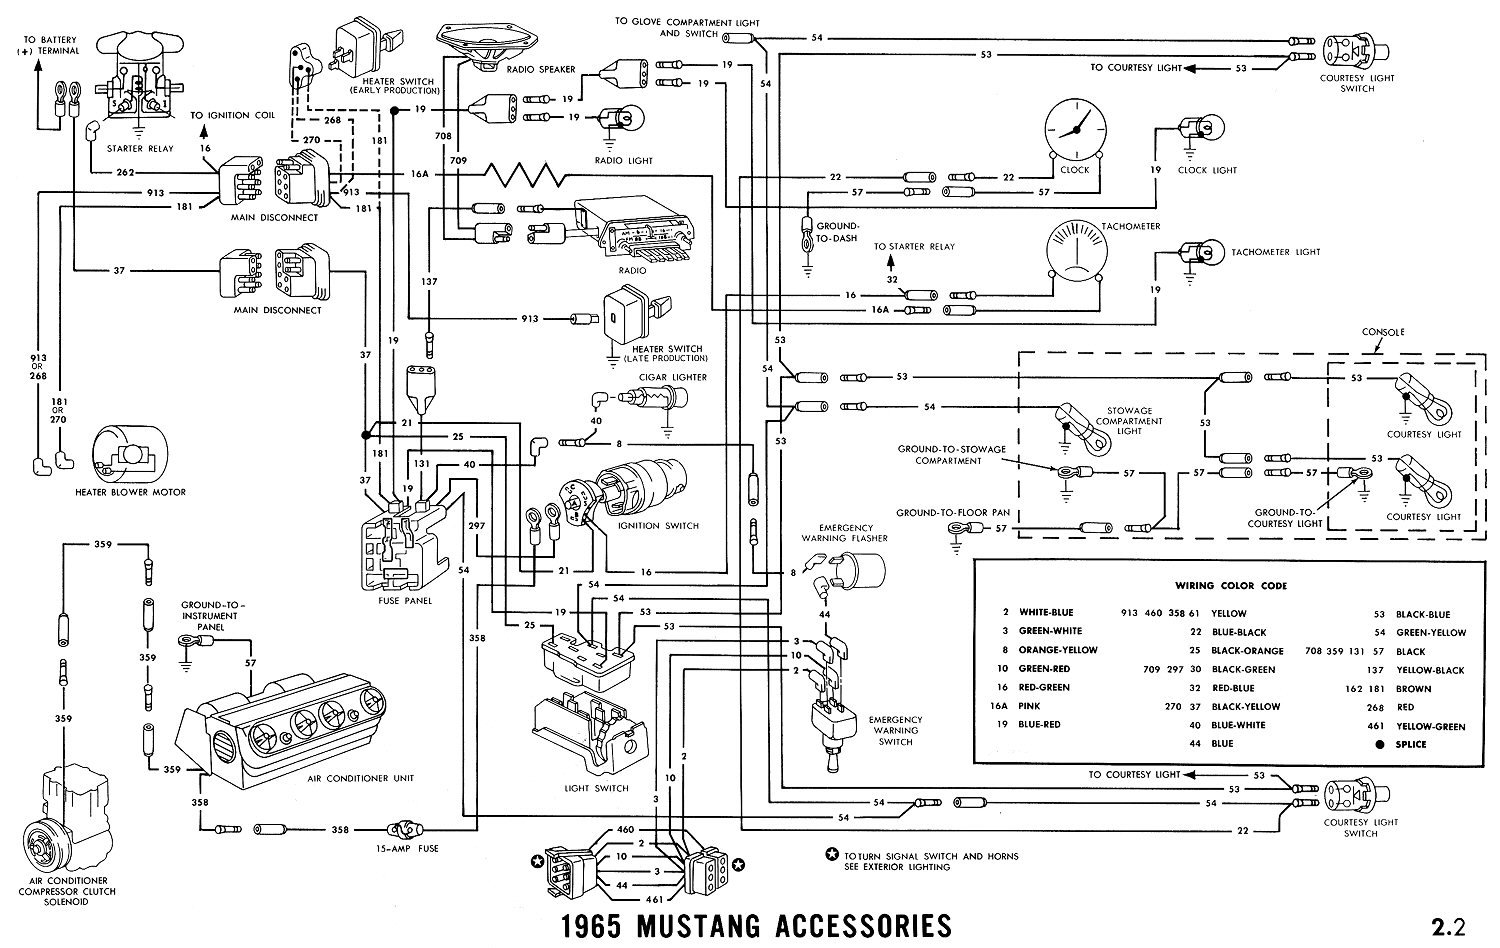 1965 Mustang Radio Wiring Diagram Schematic 2019 2002 Ford Focus Thermostat Housing On 97 Connections Forum